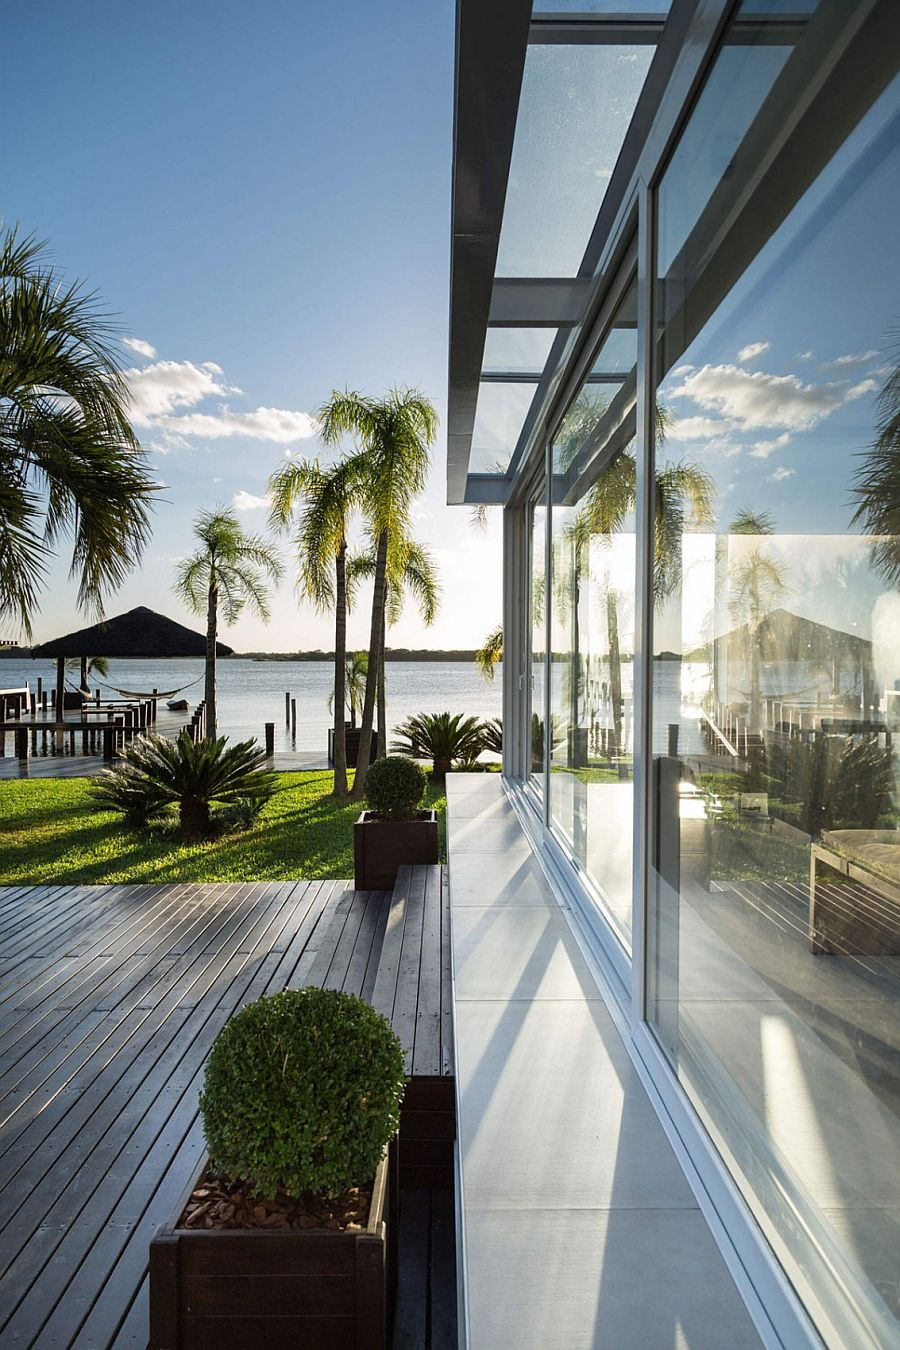 Stunning views of the lake and a relaxing deck grace the lovely pool home